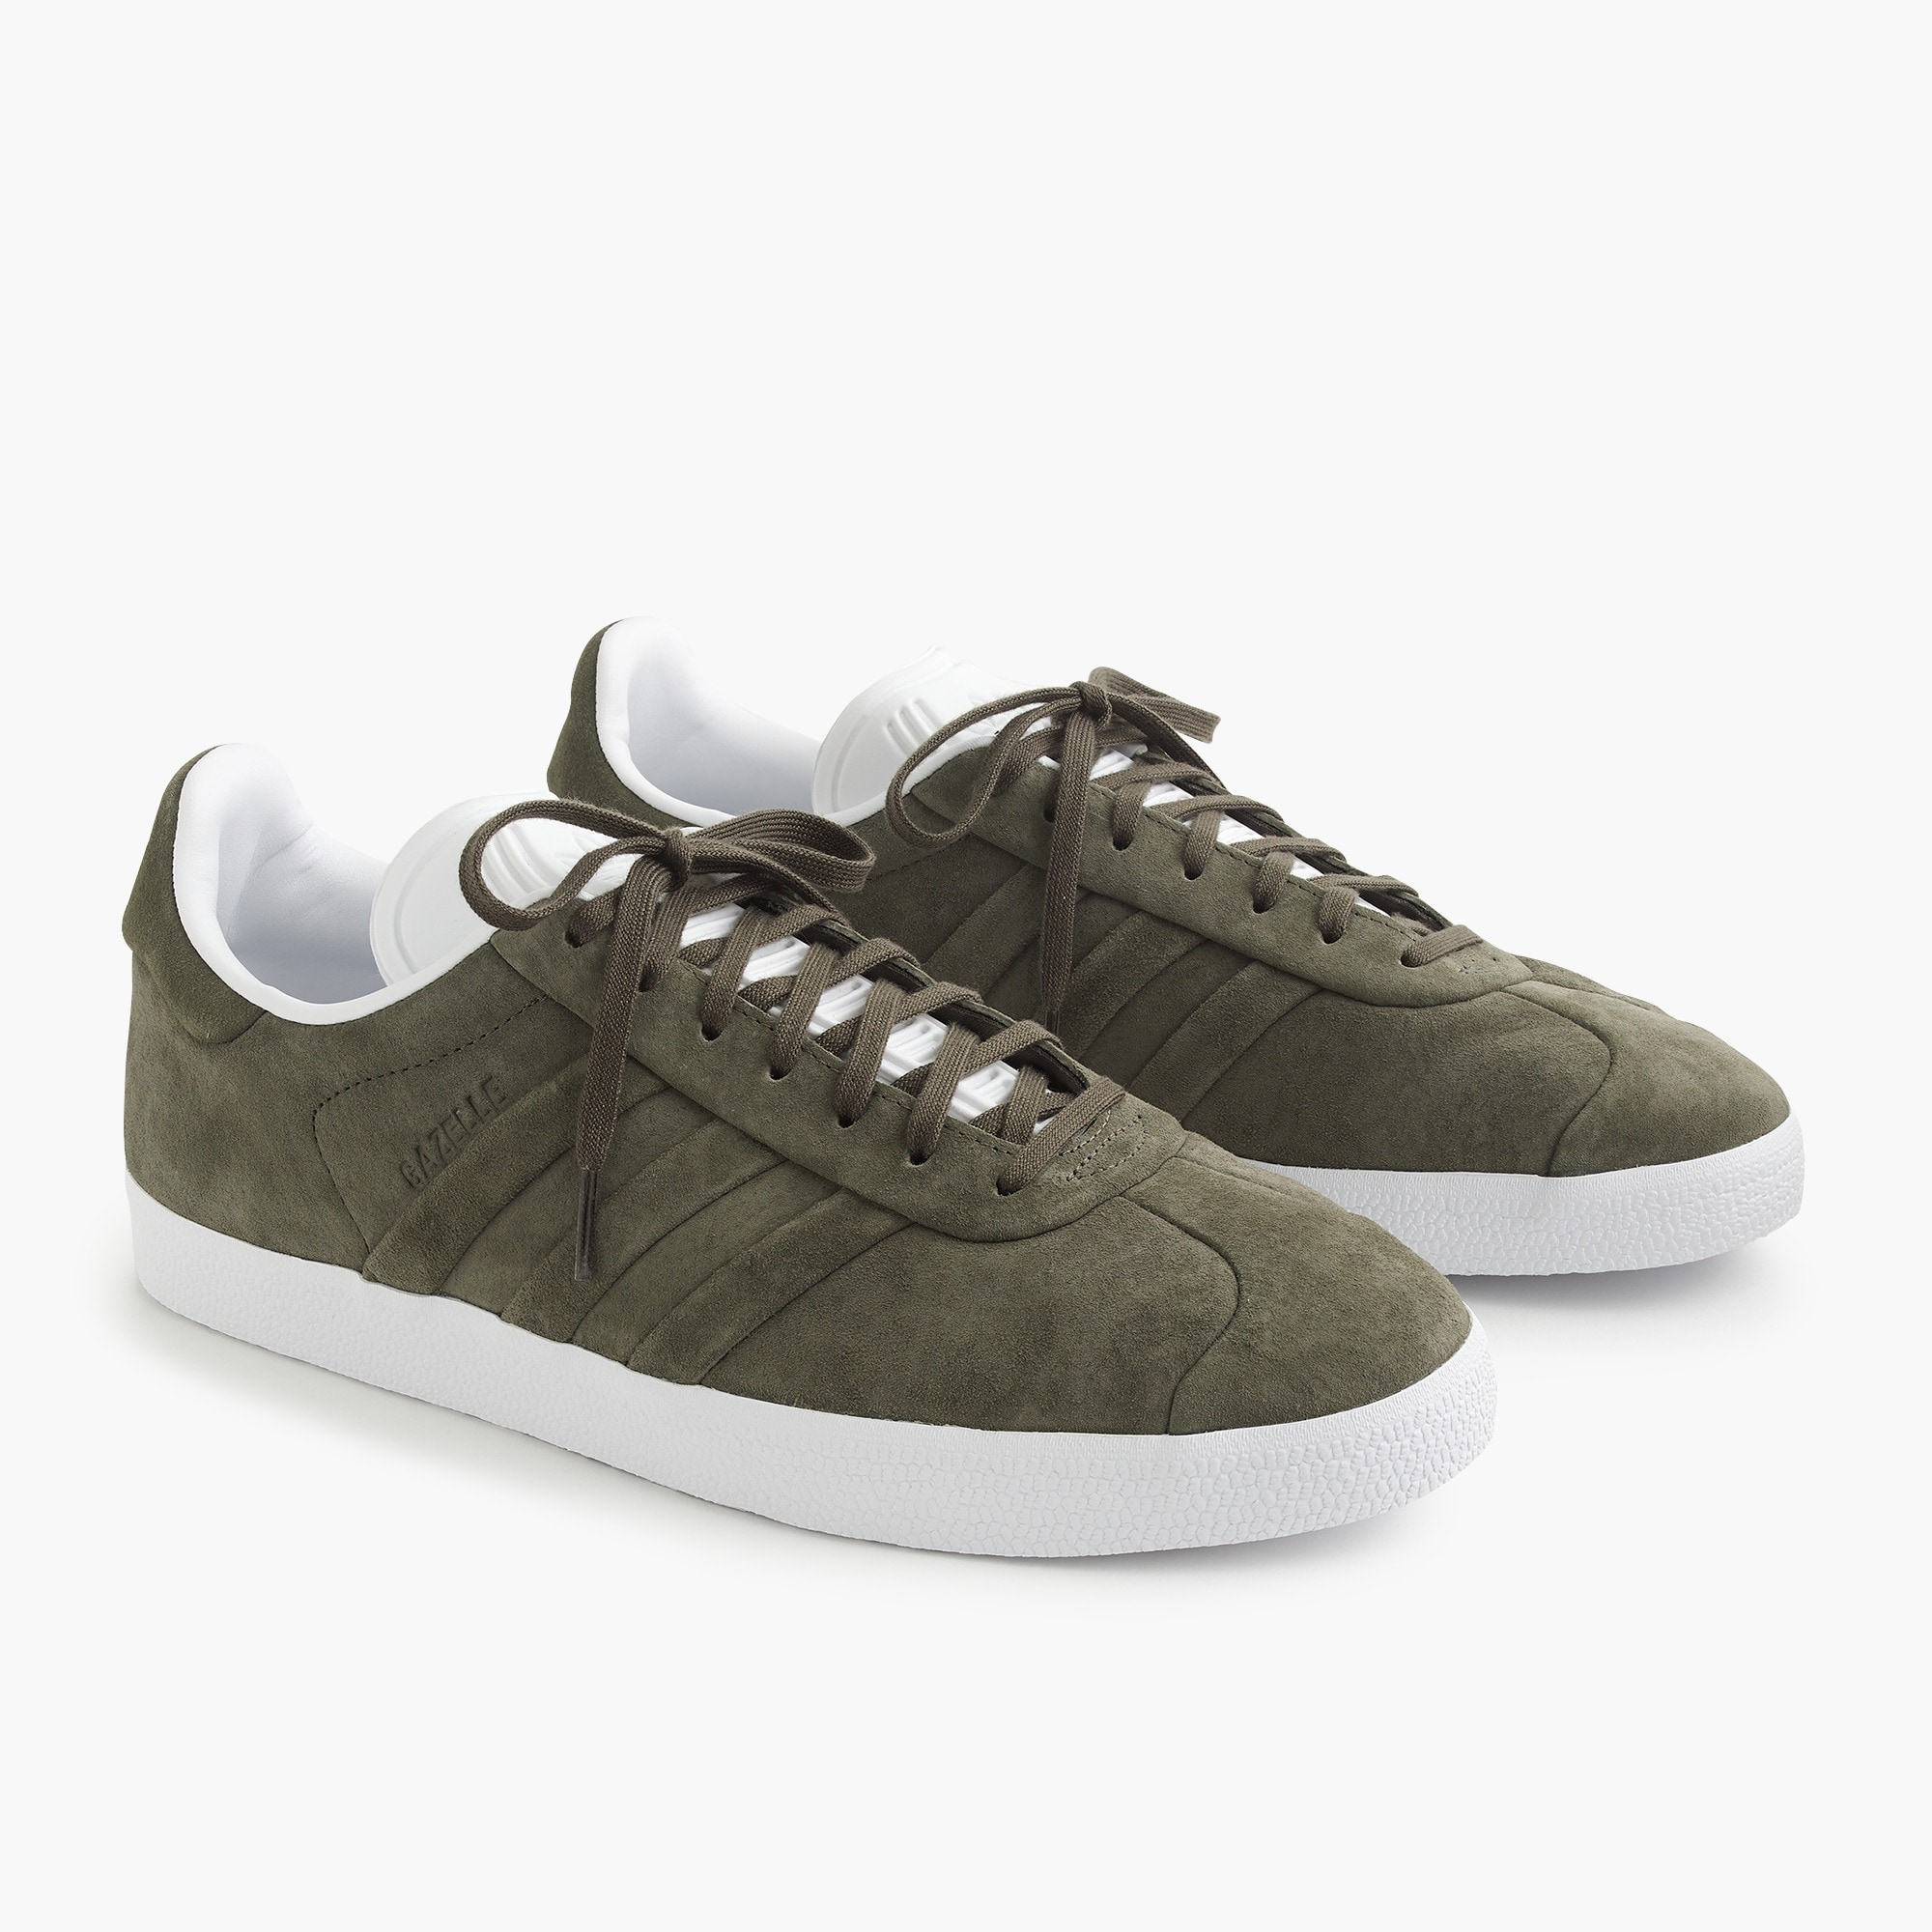 mens Adidas® Gazelle® sneakers in suede